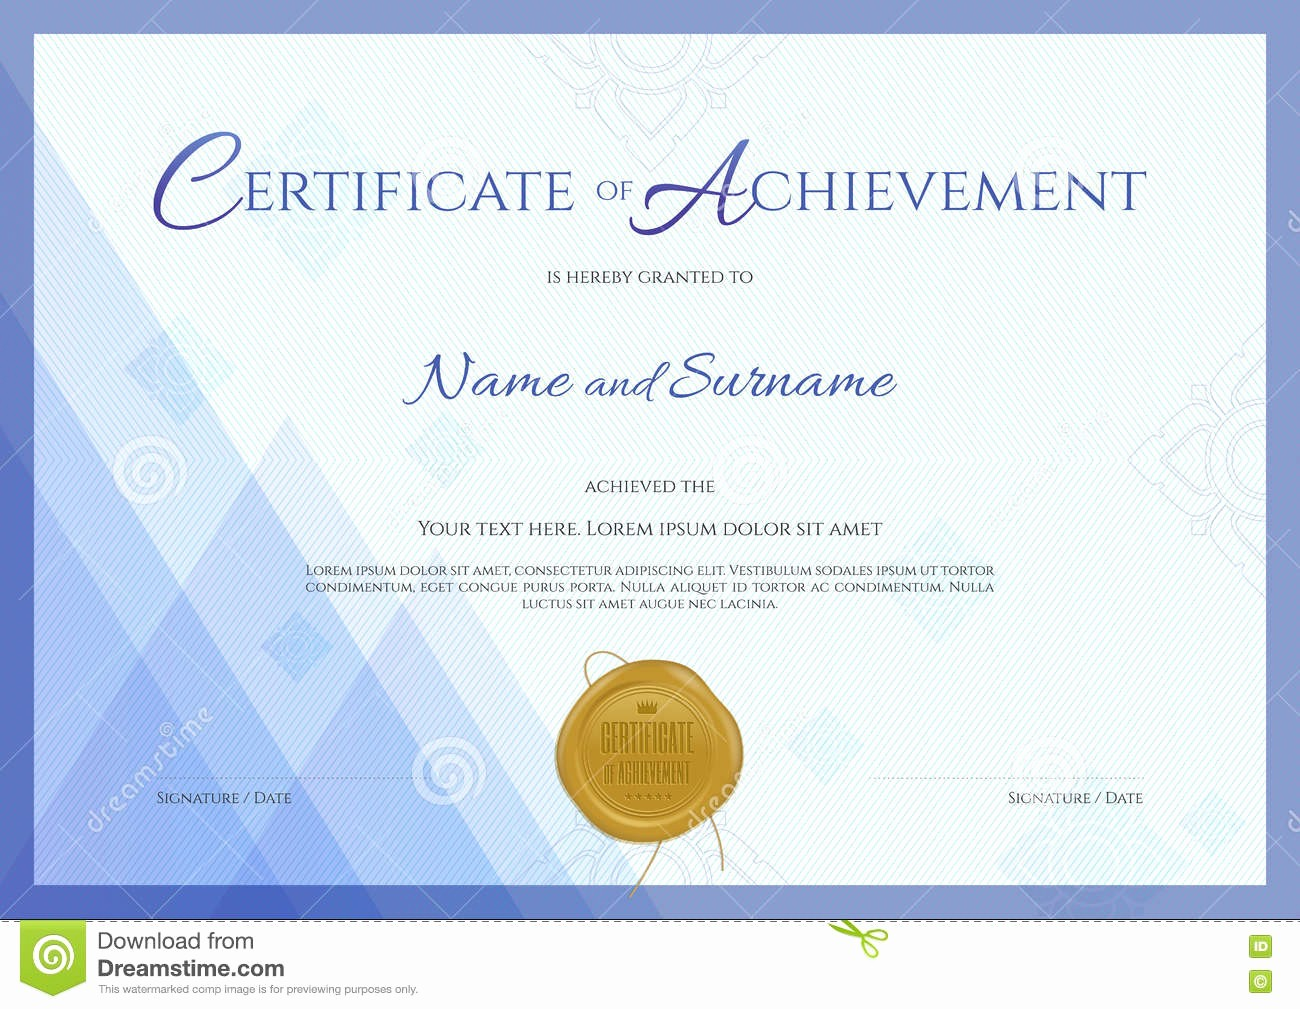 What is Certificate Of Achievement Best Of Certificate Achievement Template with Blue theme